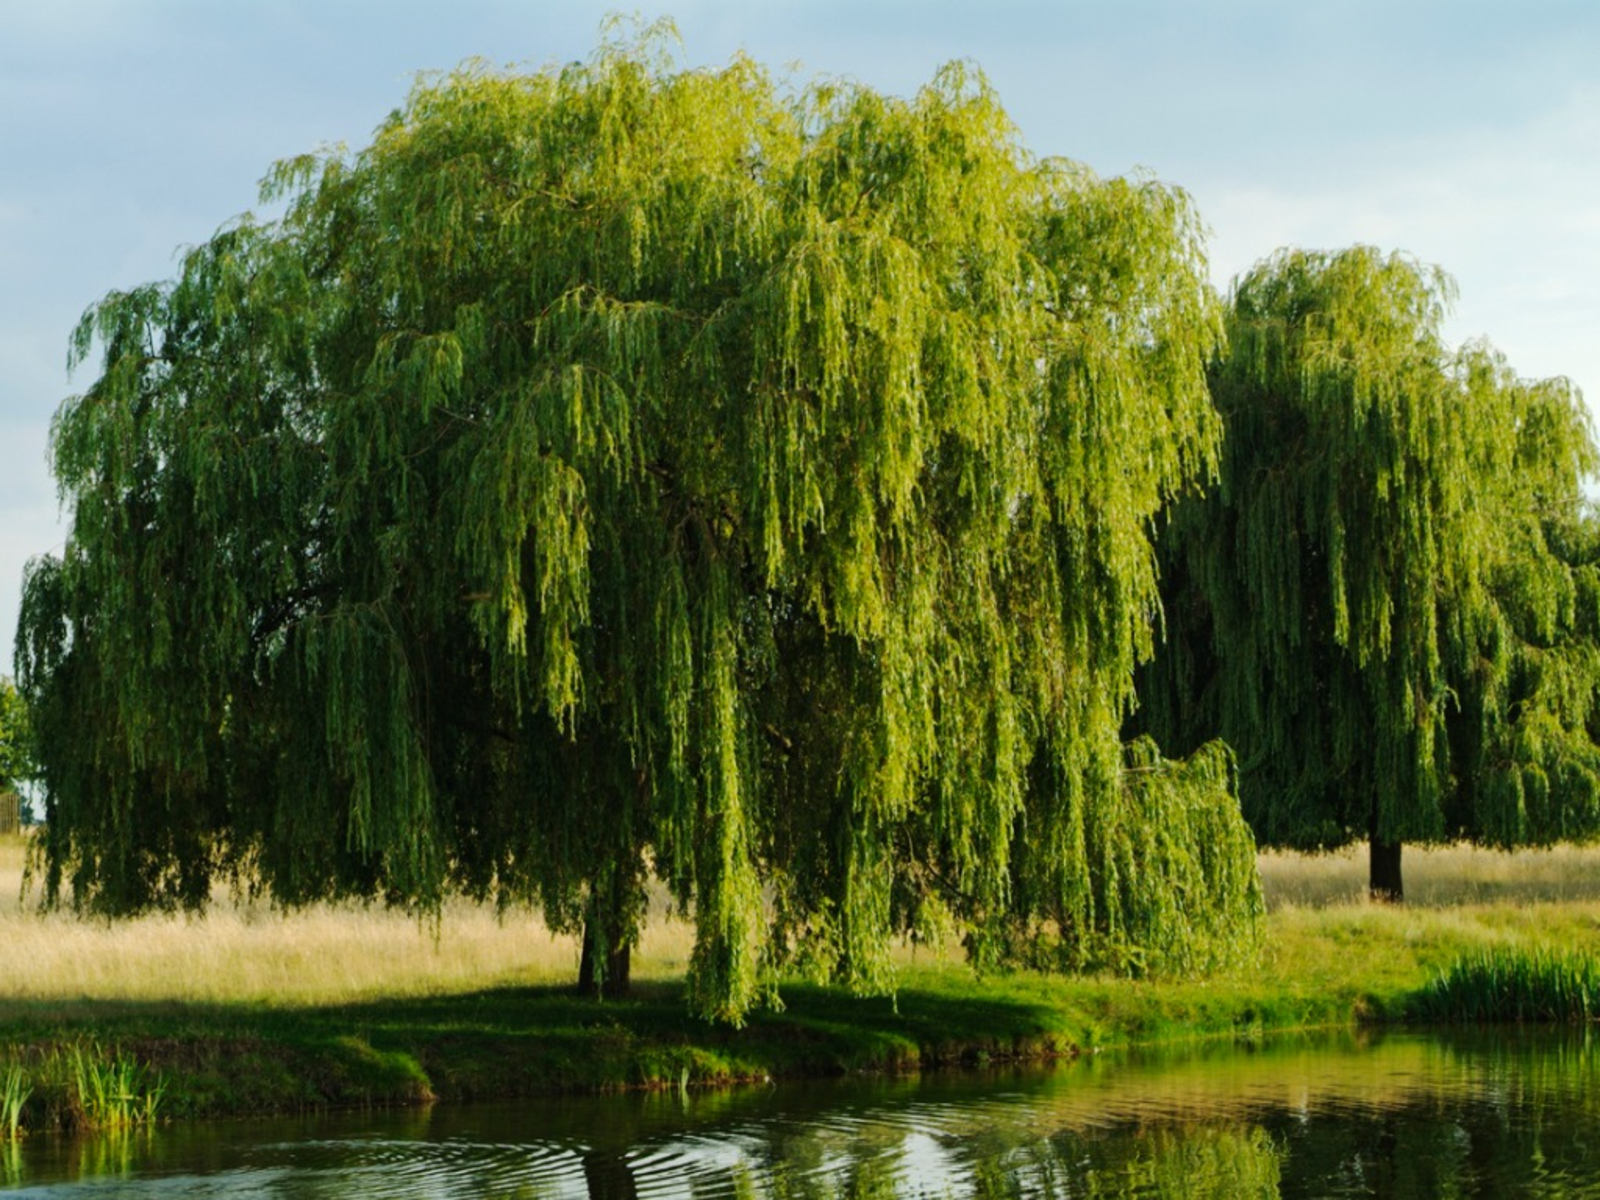 Willow Tree Care Tips For Planting Willow Trees In The Landscape